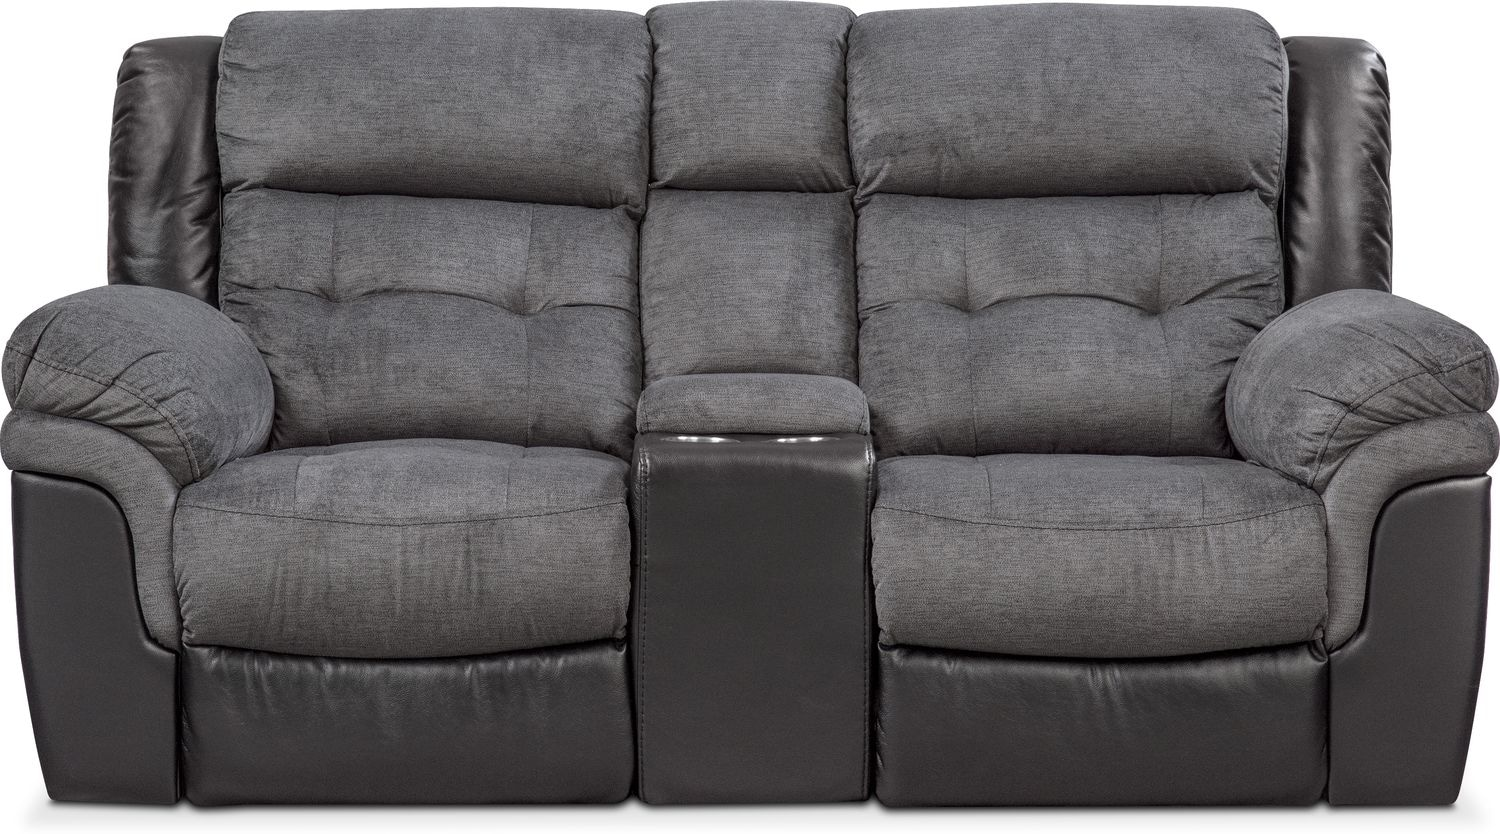 Tacoma Dual Power Reclining Loveseat With Console Black American Signature Furniture